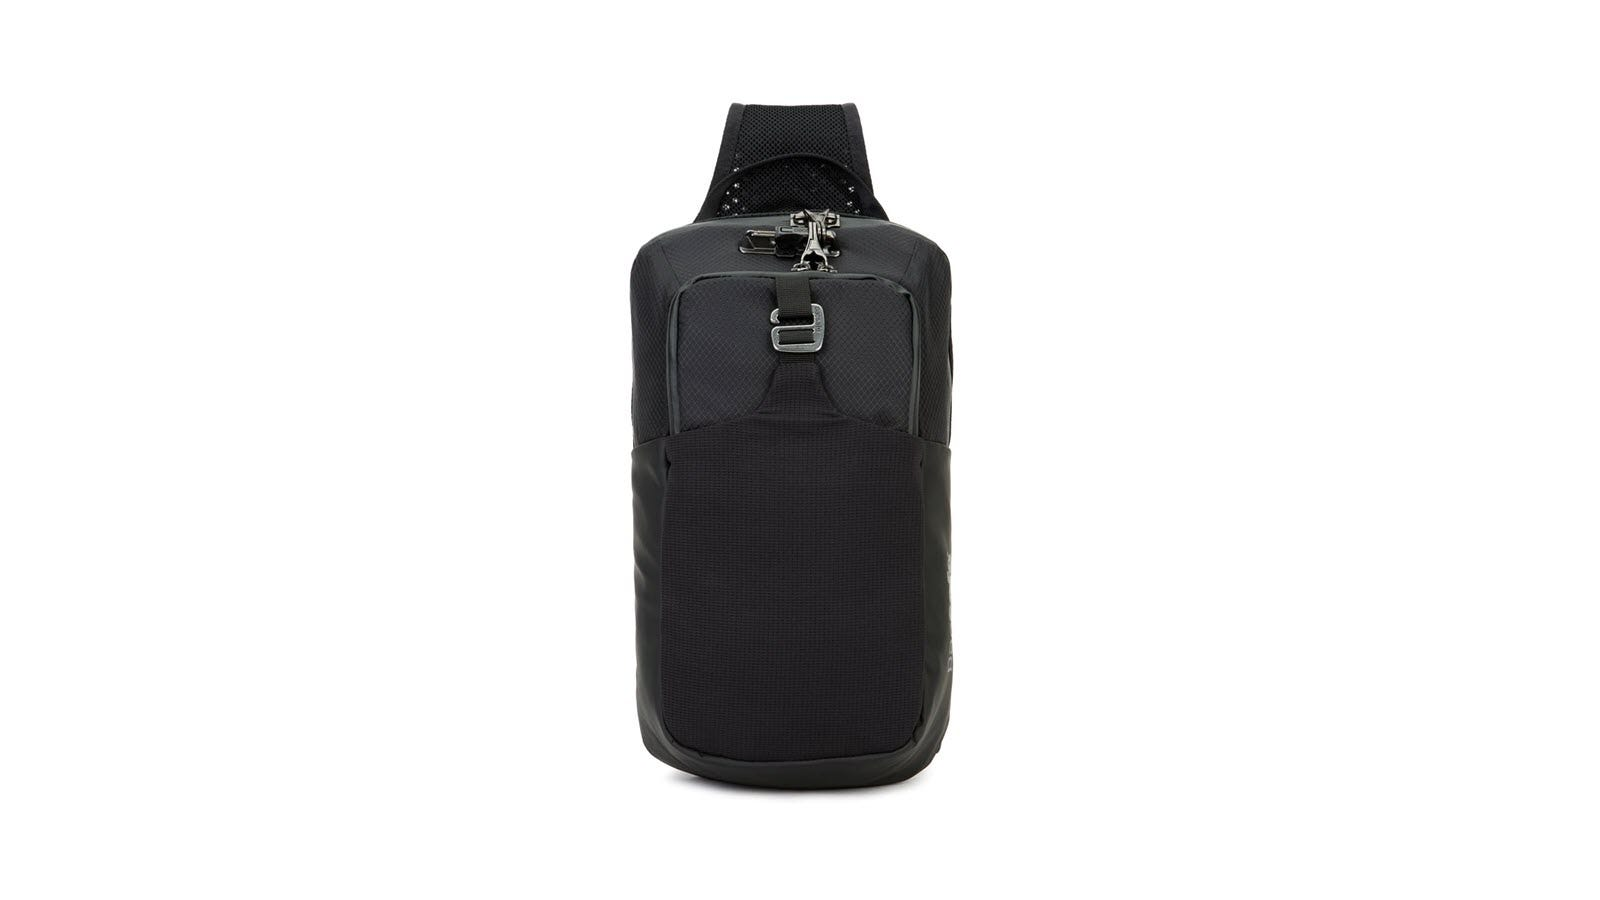 Pacsafe Unisex Venturesafe X Anti-Theft Sling Pack seen from the back, in black.